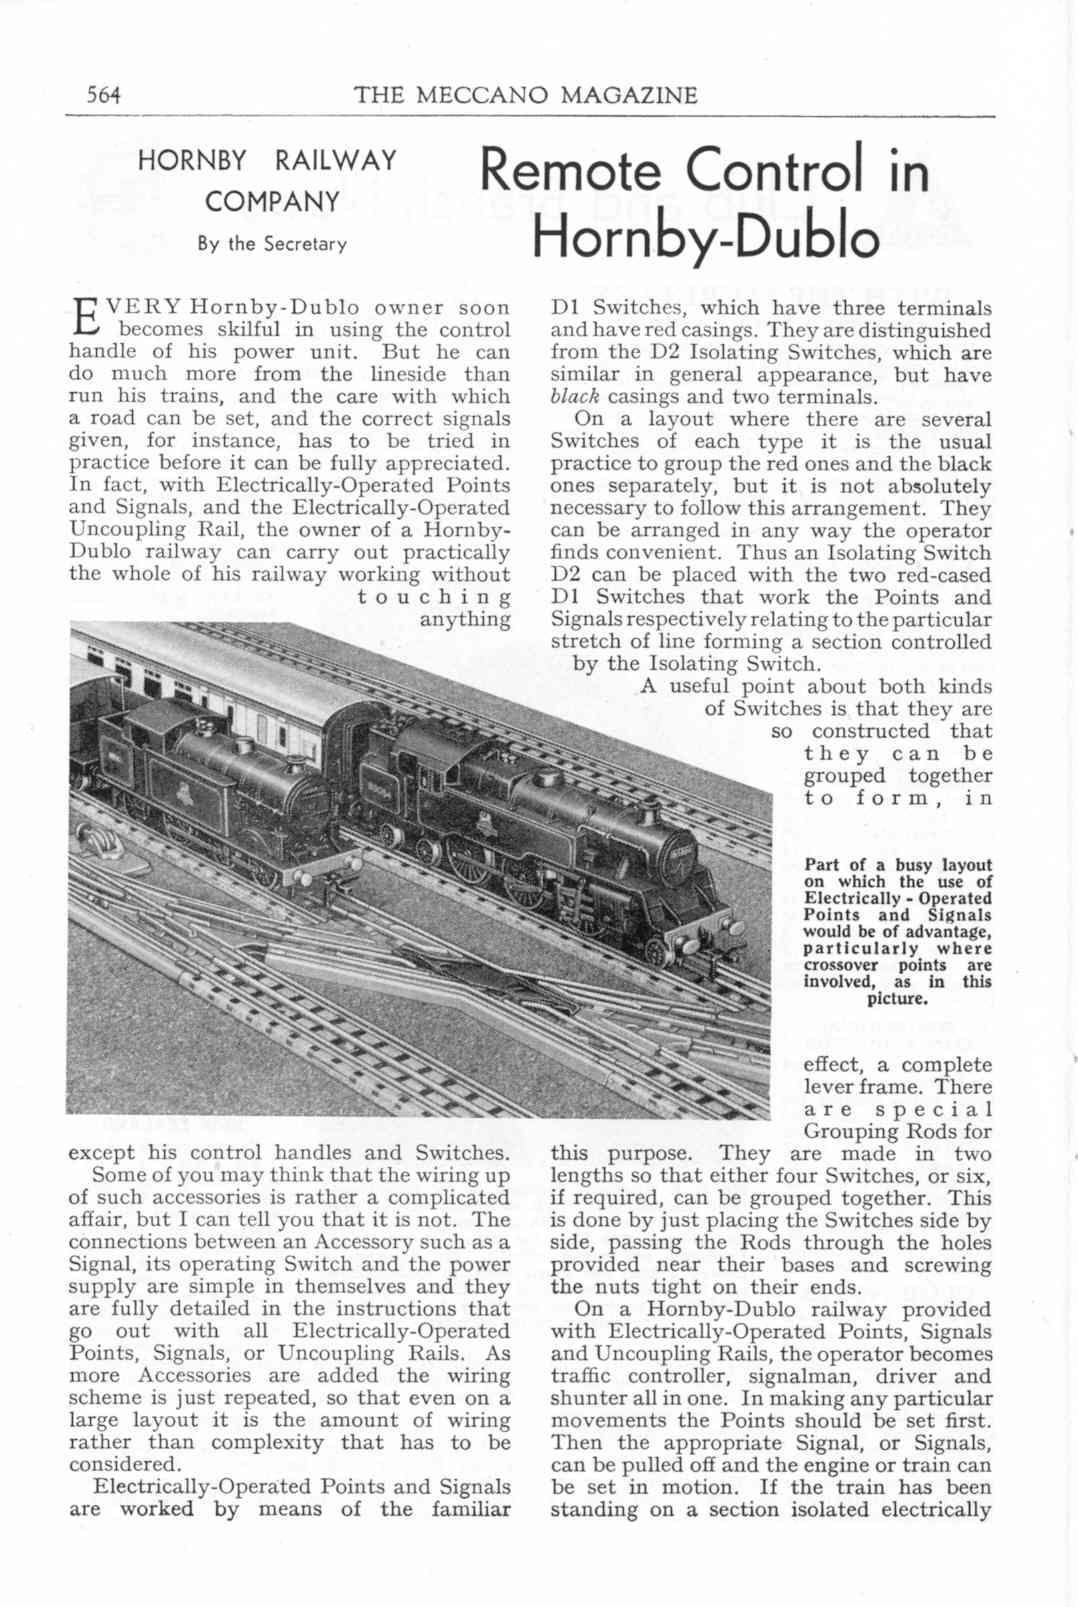 UK Meccano Magazine October 1955 Page 564